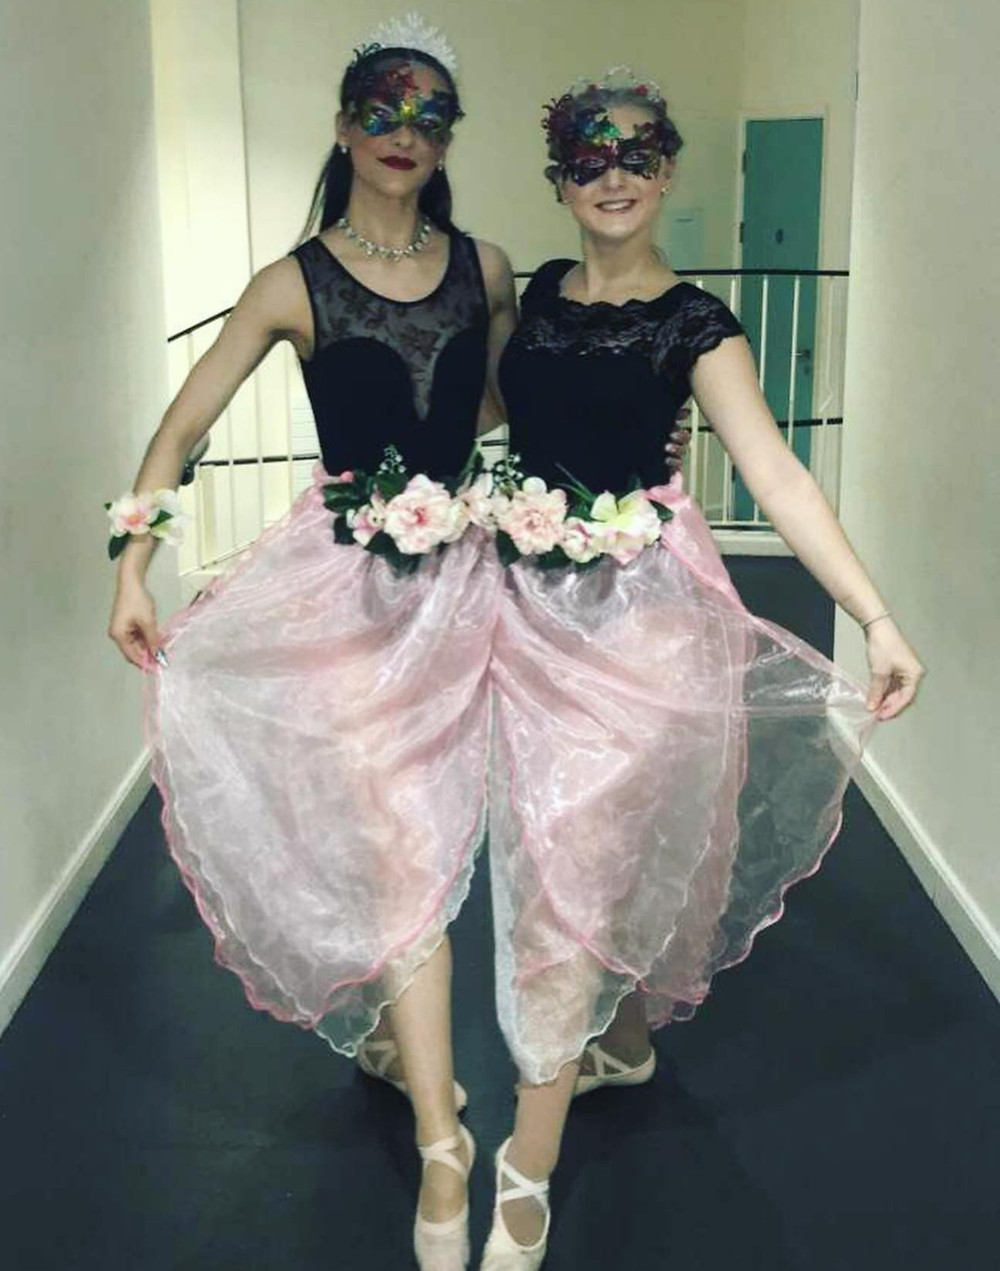 Me & Carys backstage during Jack & The Beanstalk, 2019 in our costumes for the 'Beautiful Ballet'.